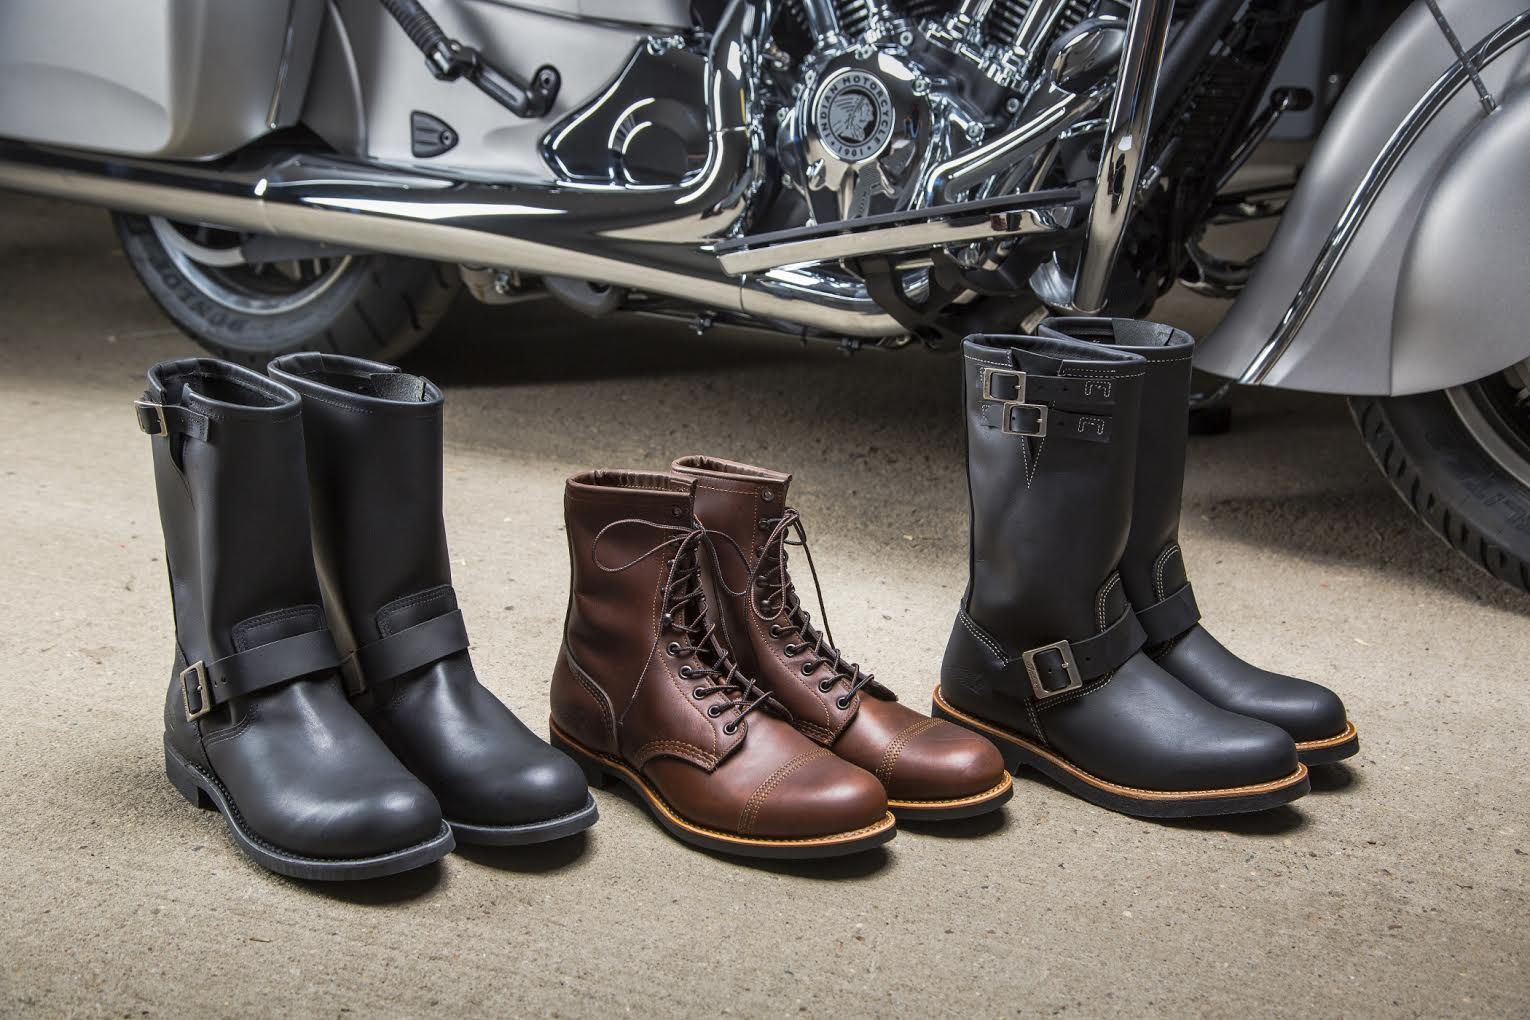 INDIAN MOTORCYCLE® AND RED WING SHOES® HANDCRAFTED AMERICAN MOTORCYCLE BOOTS